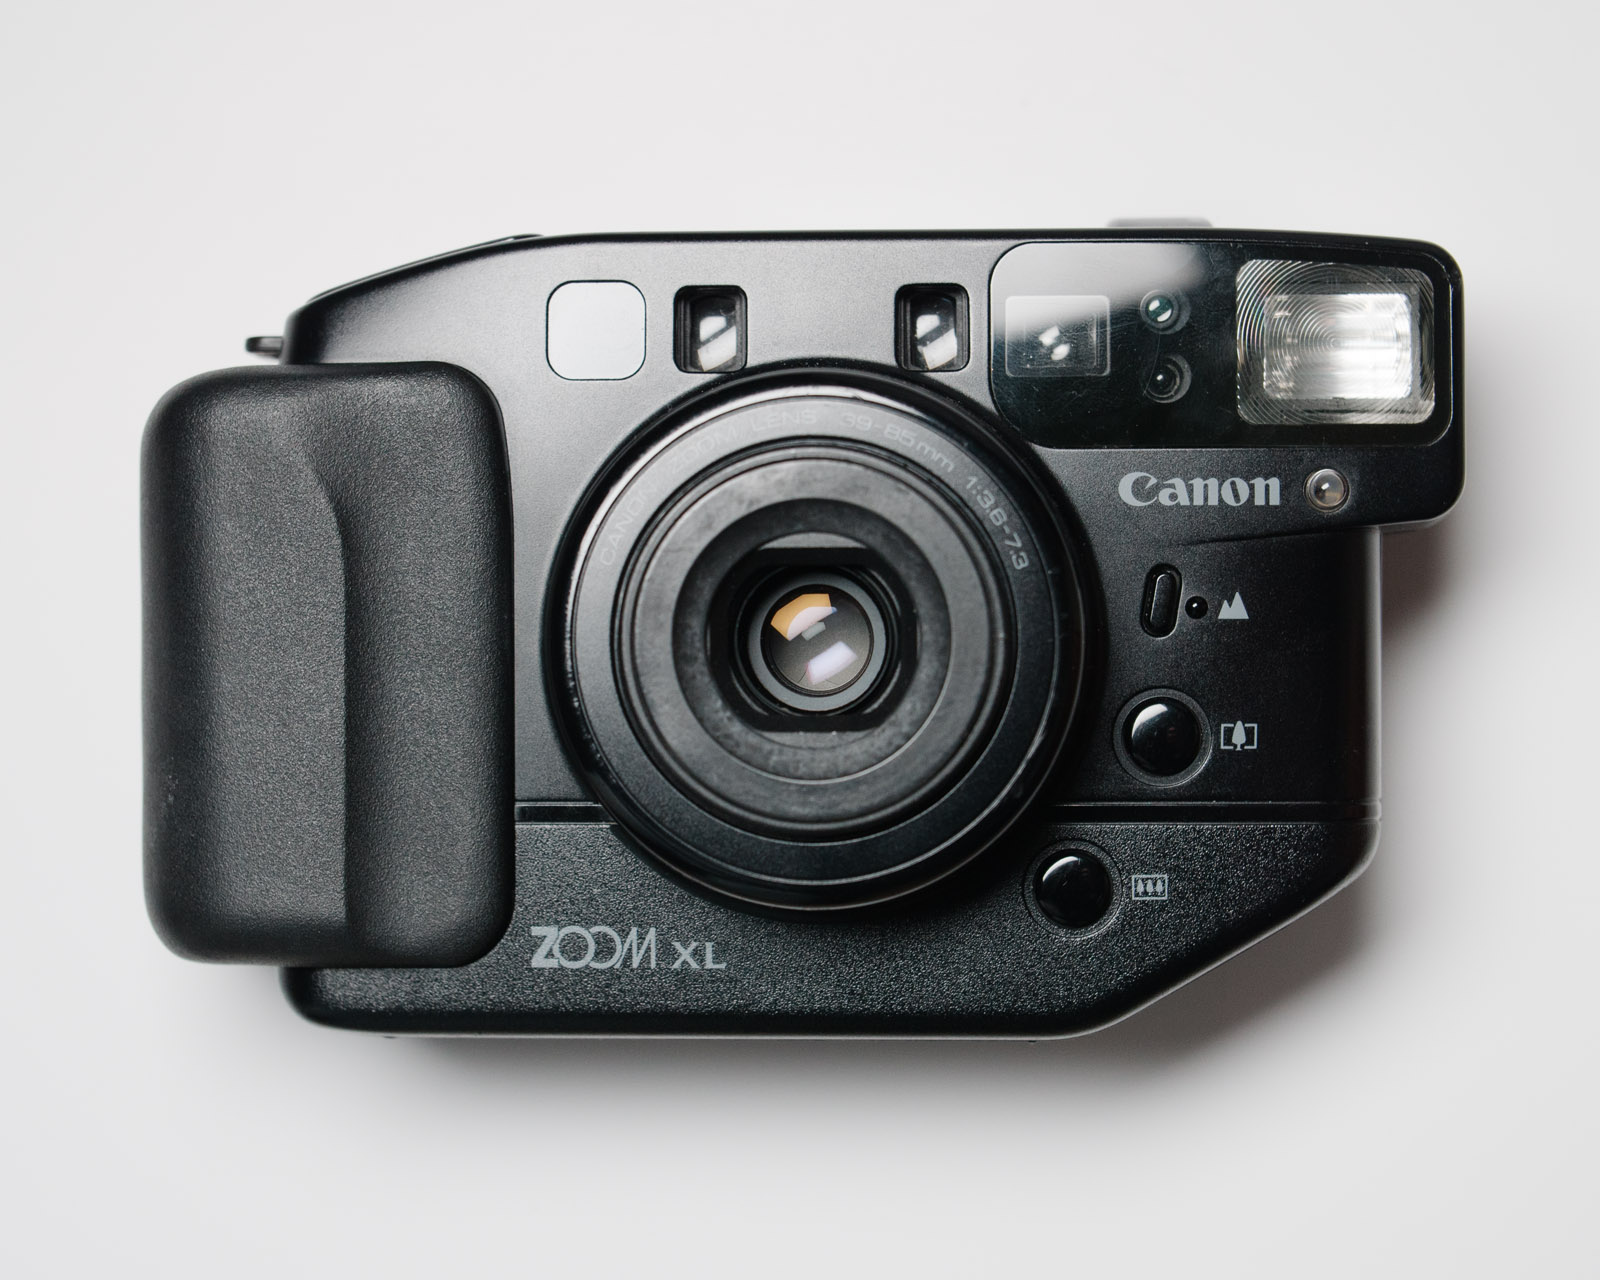 Canon Sureshot Zoom XL